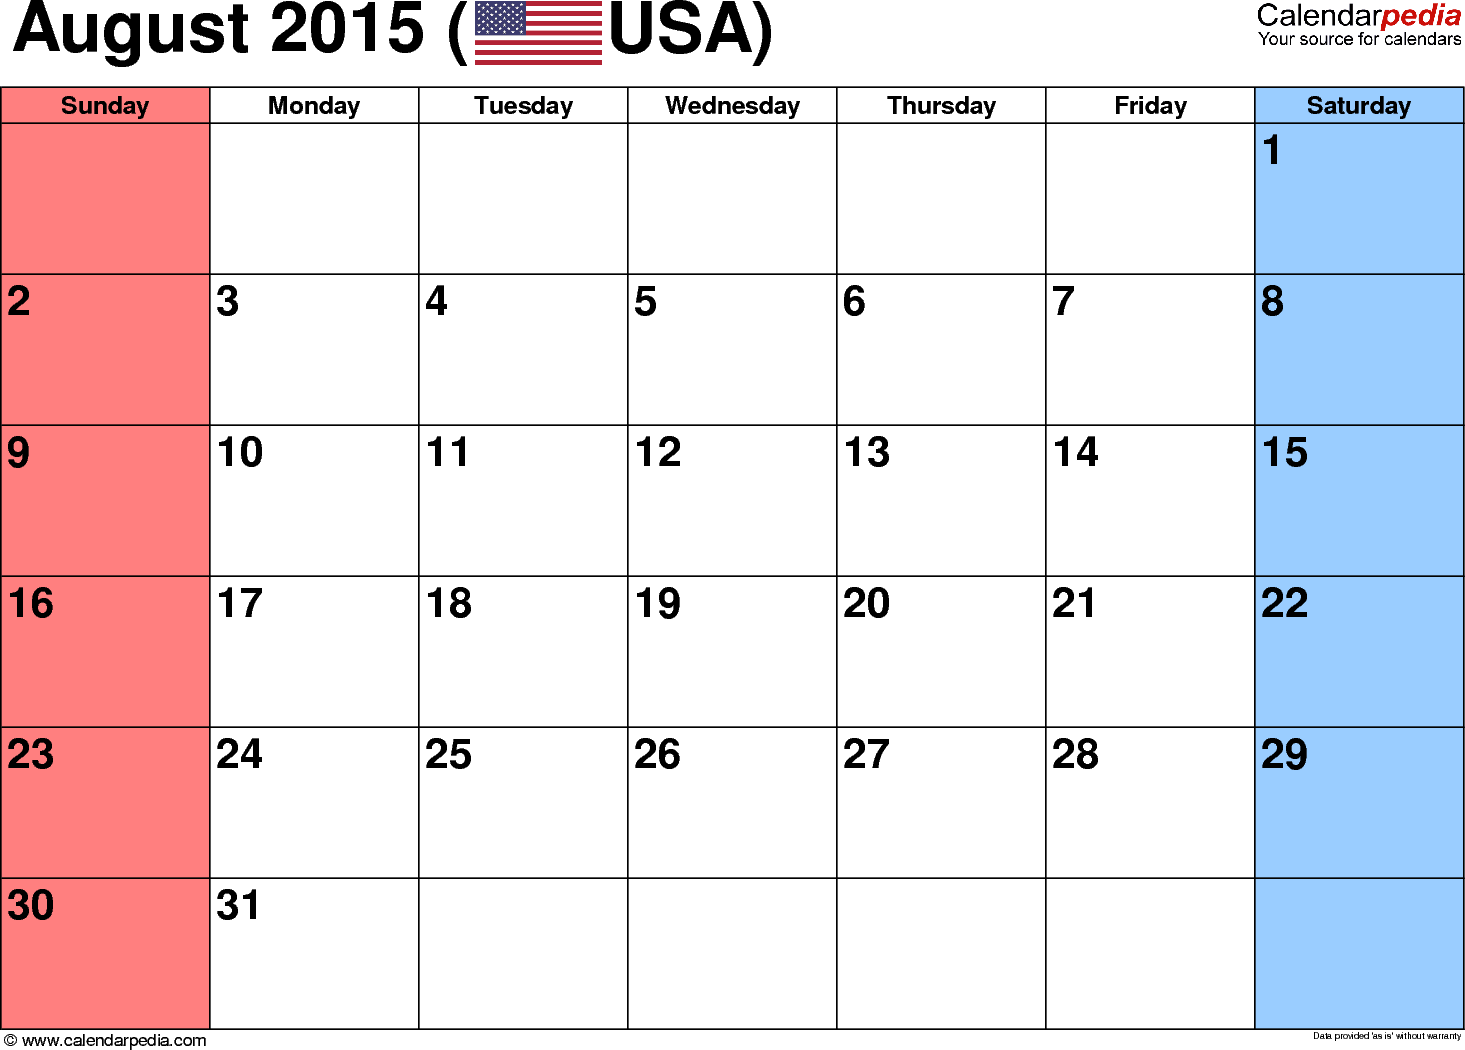 August 2015 Calendar With Holidays